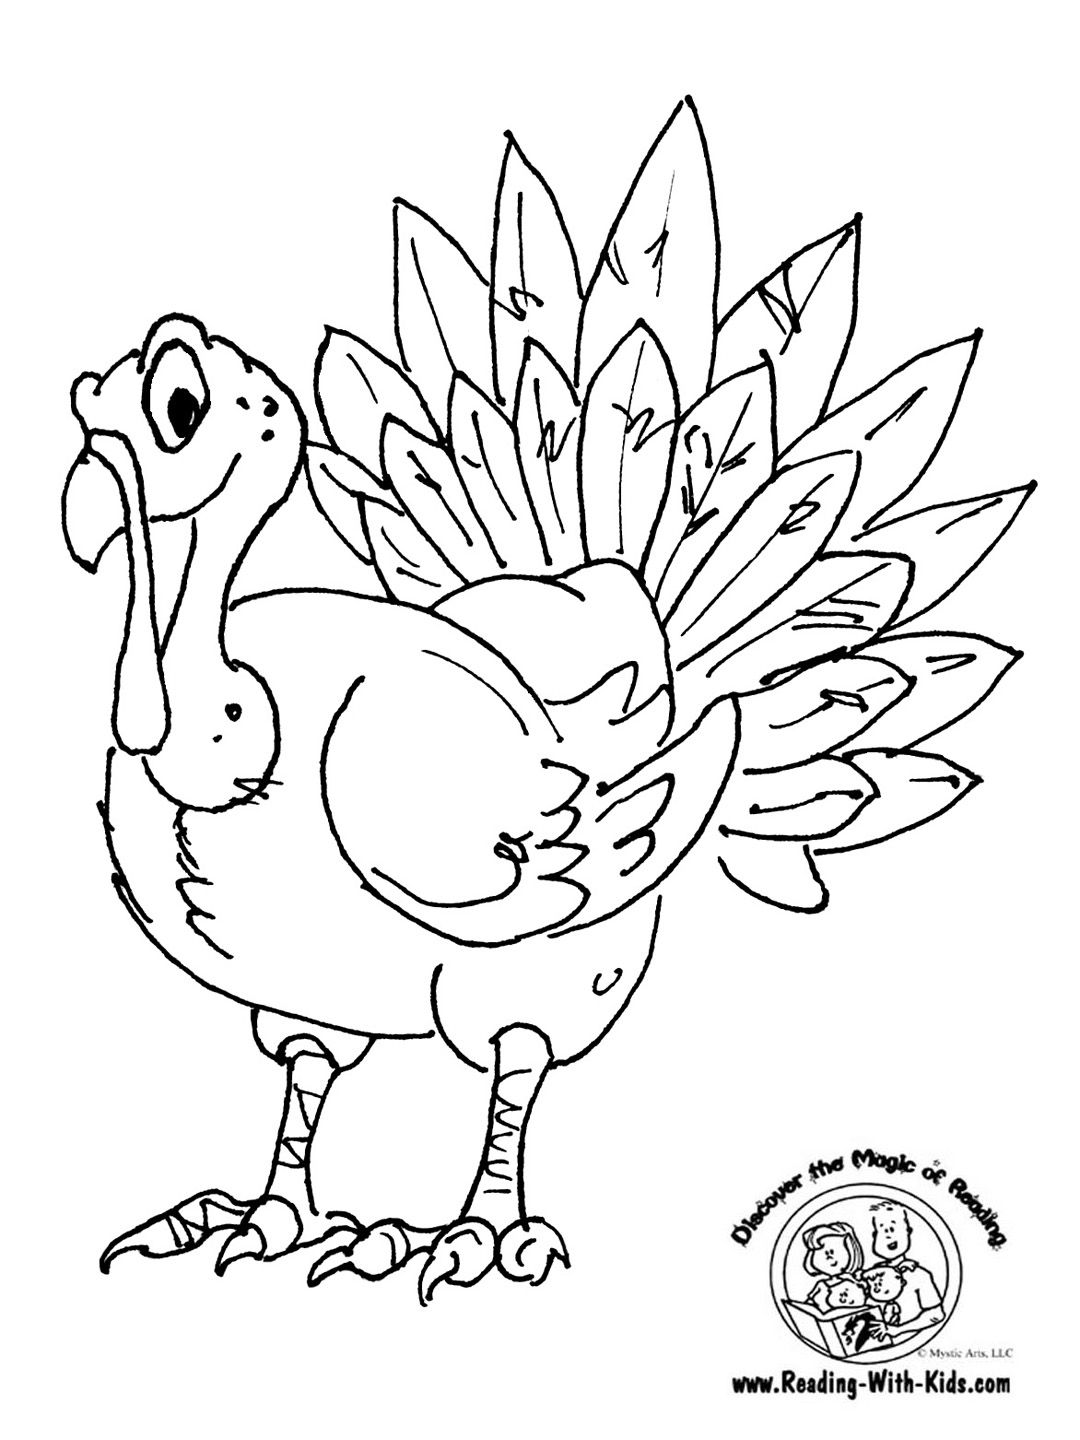 Thanksgiving Turkey Coloring Page 1080x1440 Pixels